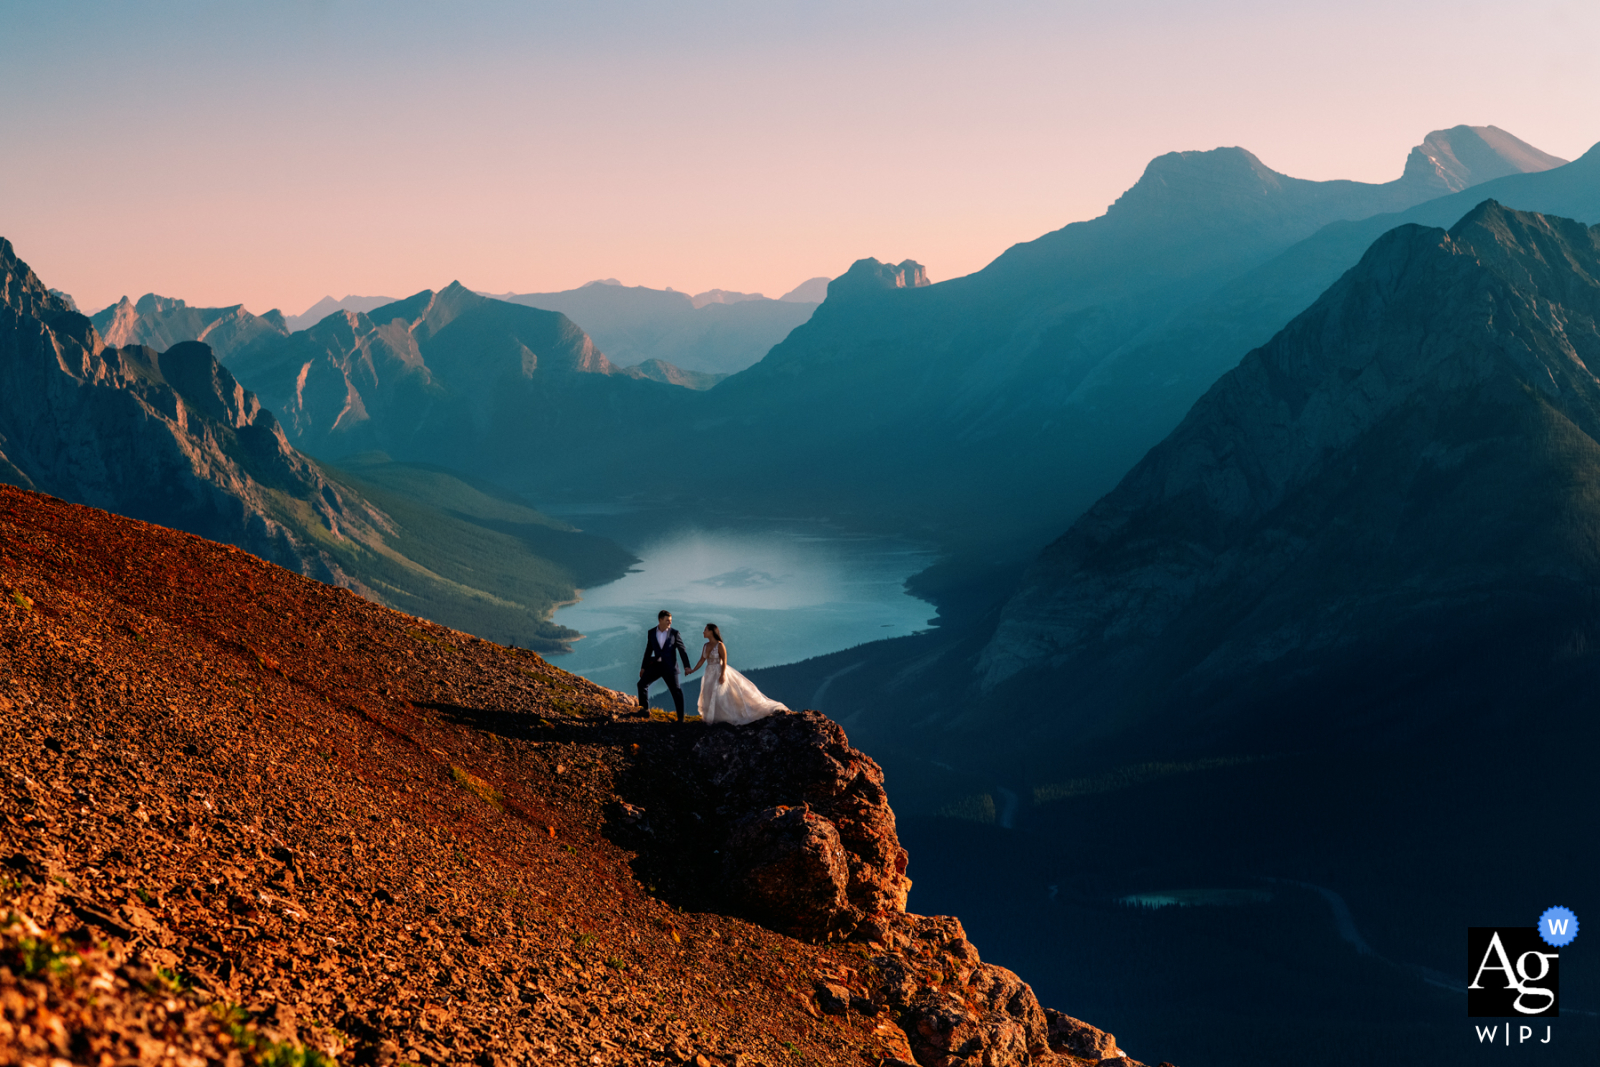 Tent Ridge, Kananaskis, AB, Canada wedding image of the couple Enjoying the time together in the mountains